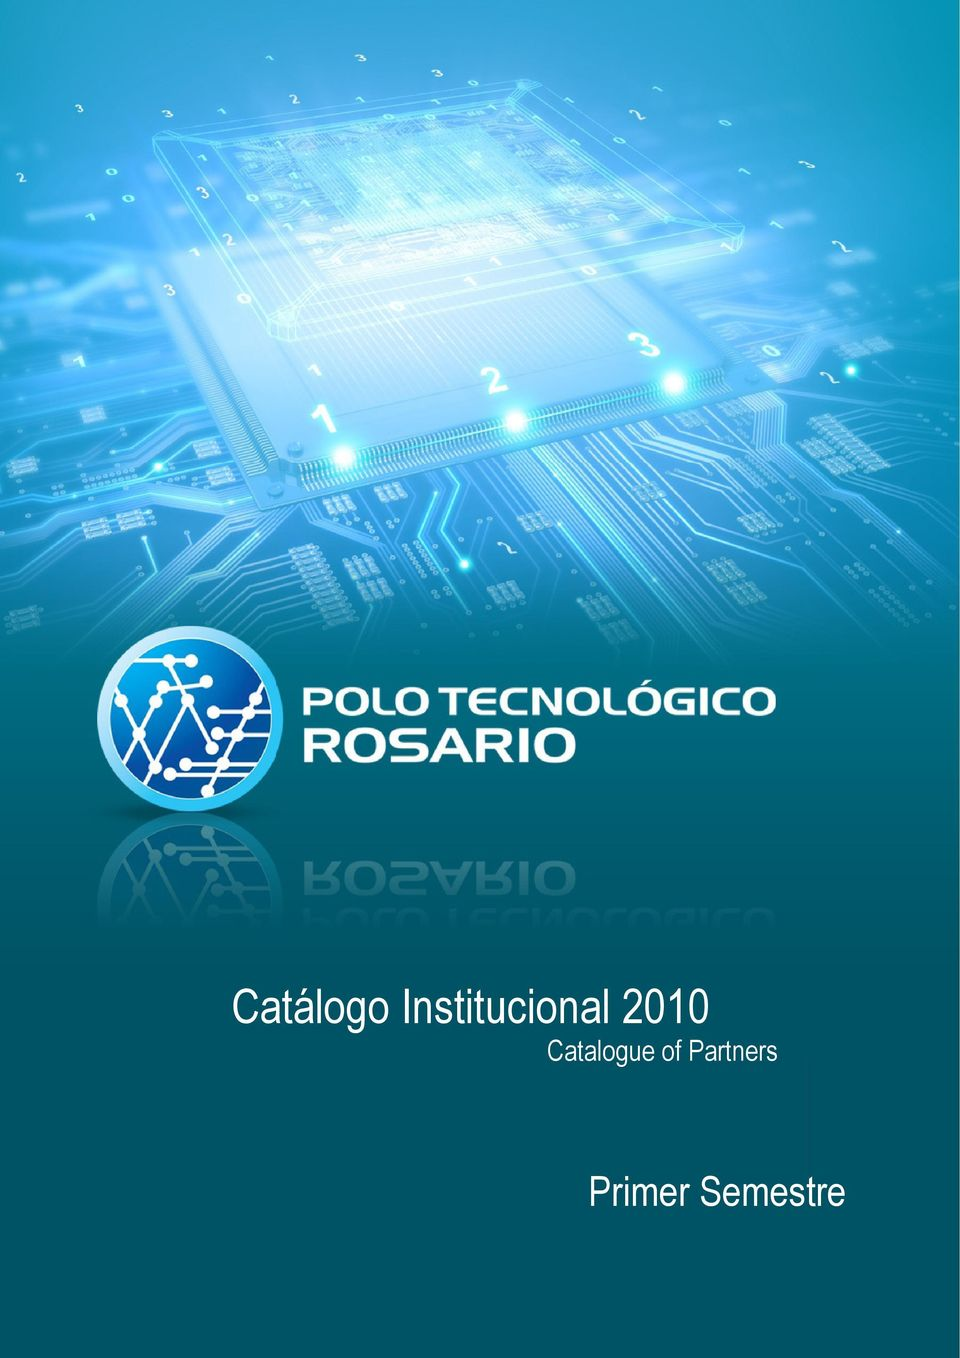 2010 Catalogue of